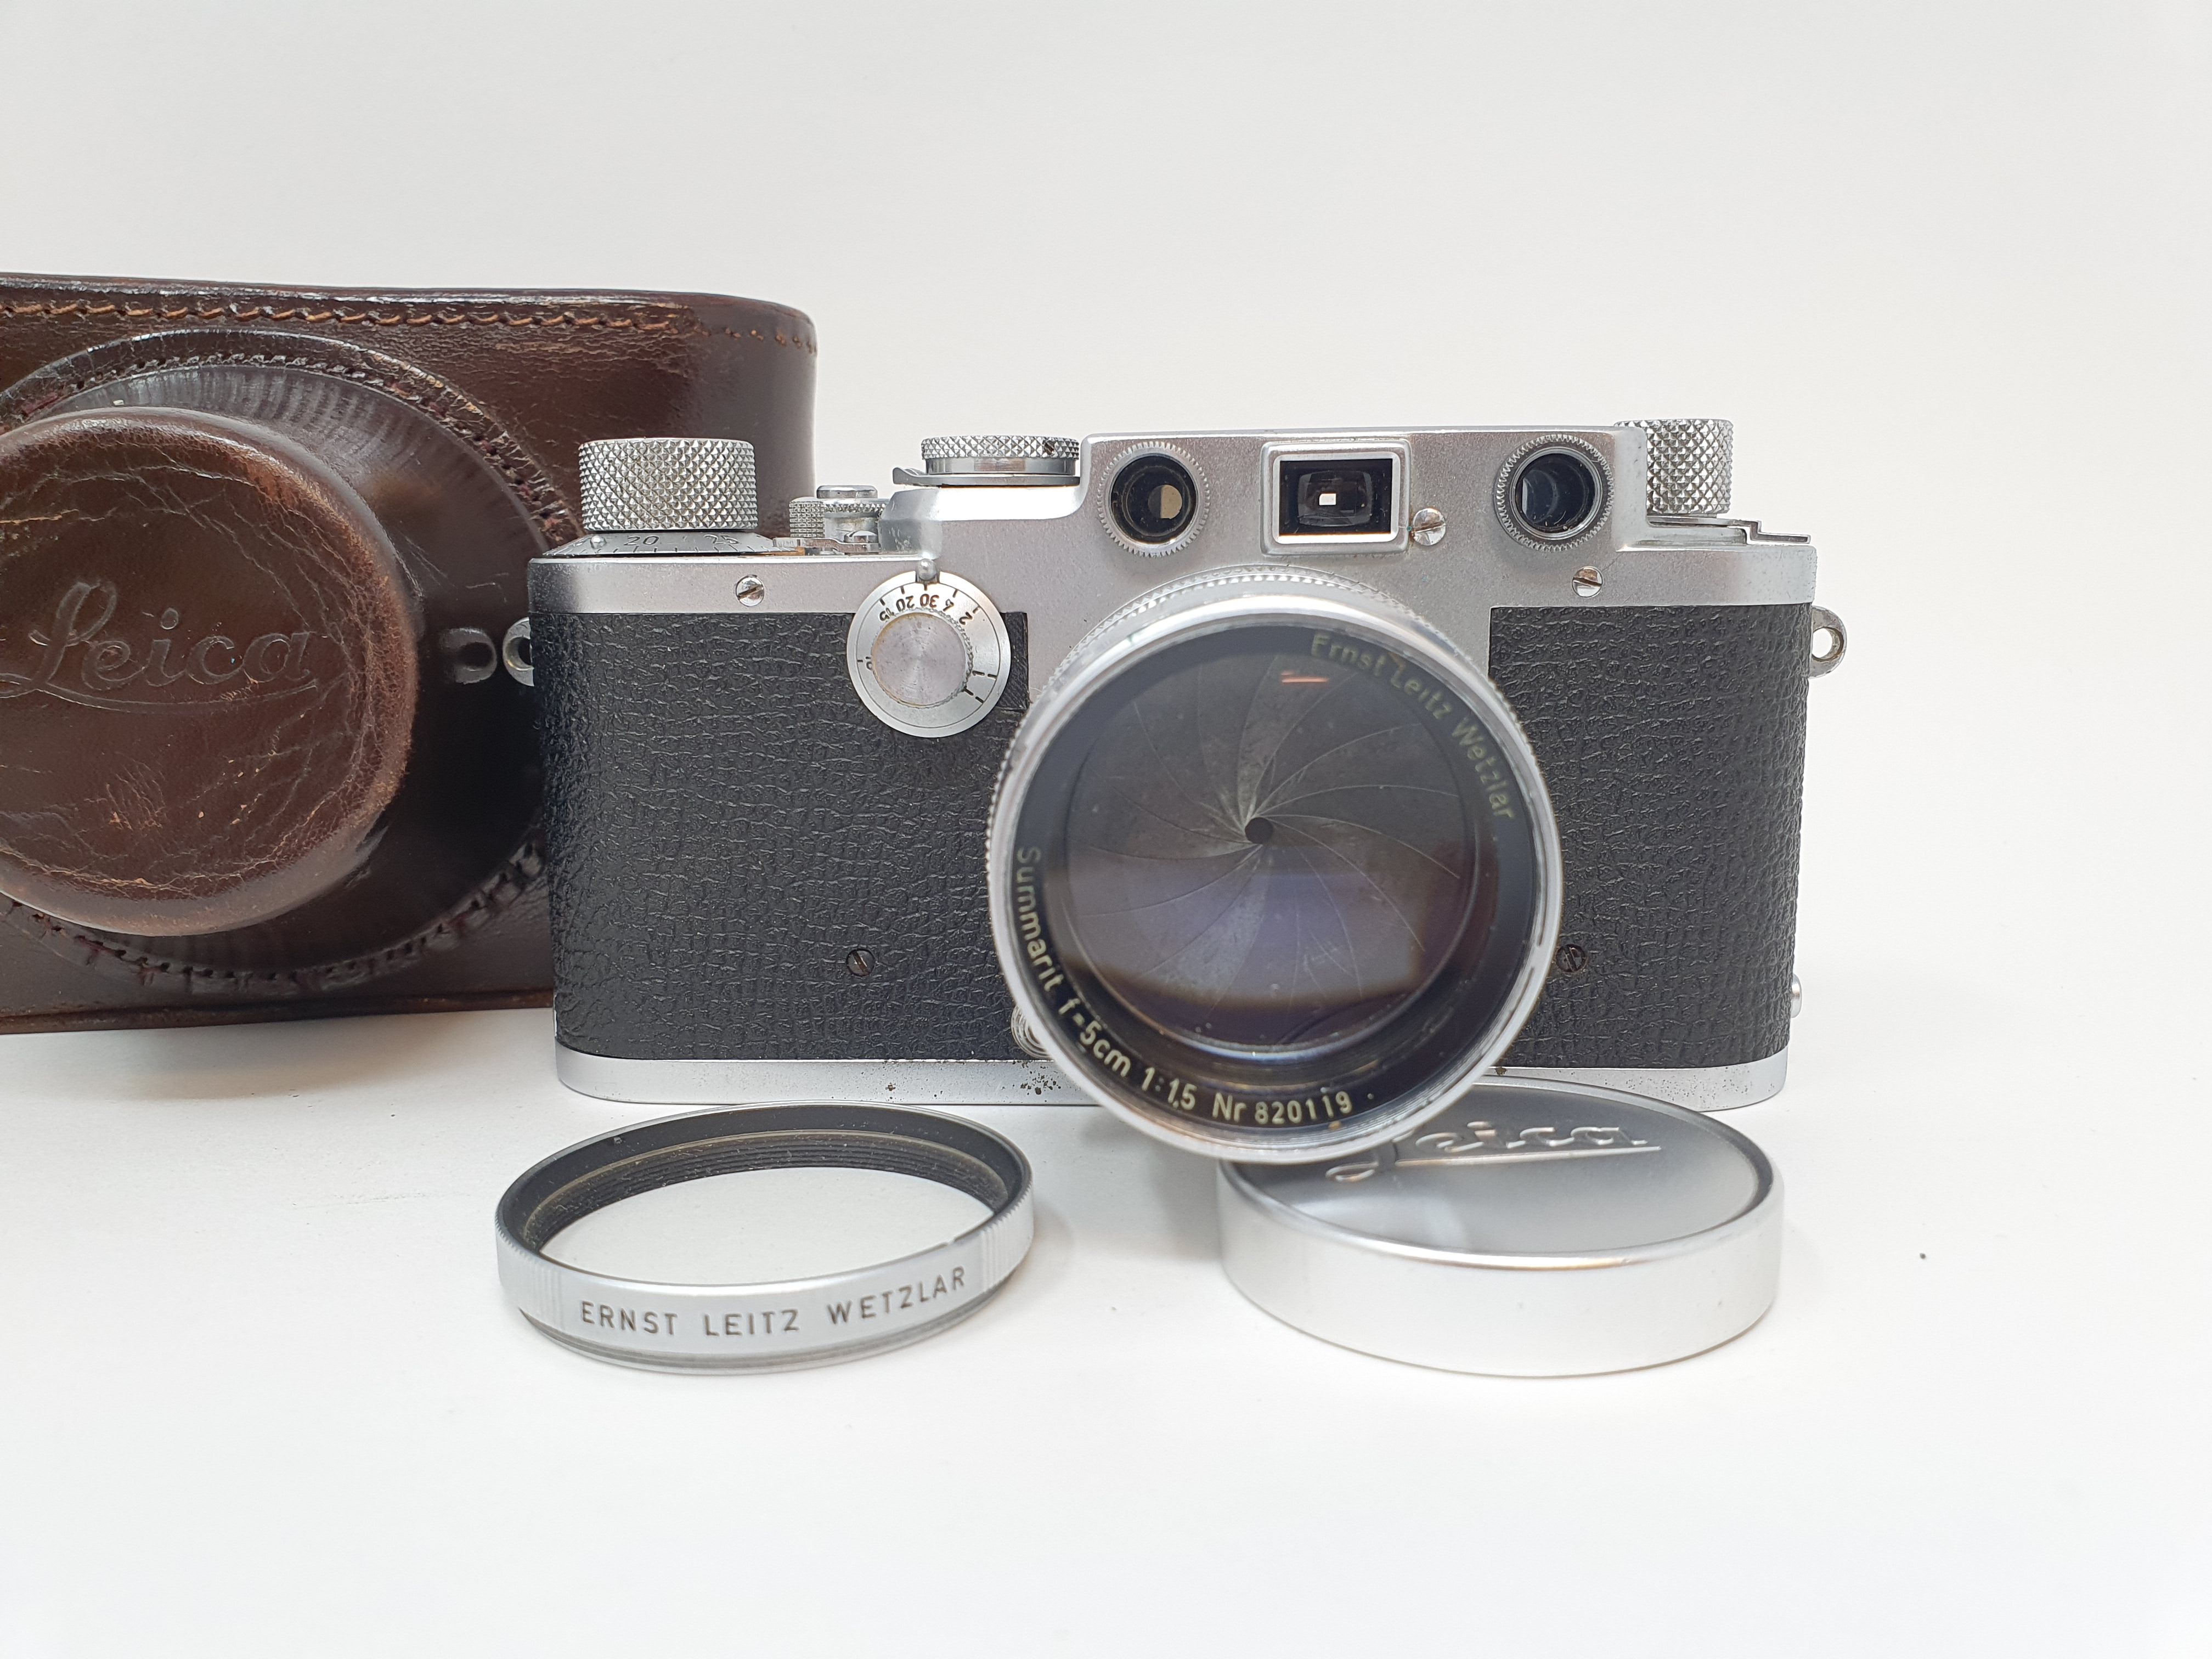 A Leica IIIf camera, serial number 566317, with leather outer case Provenance: Part of a vast single